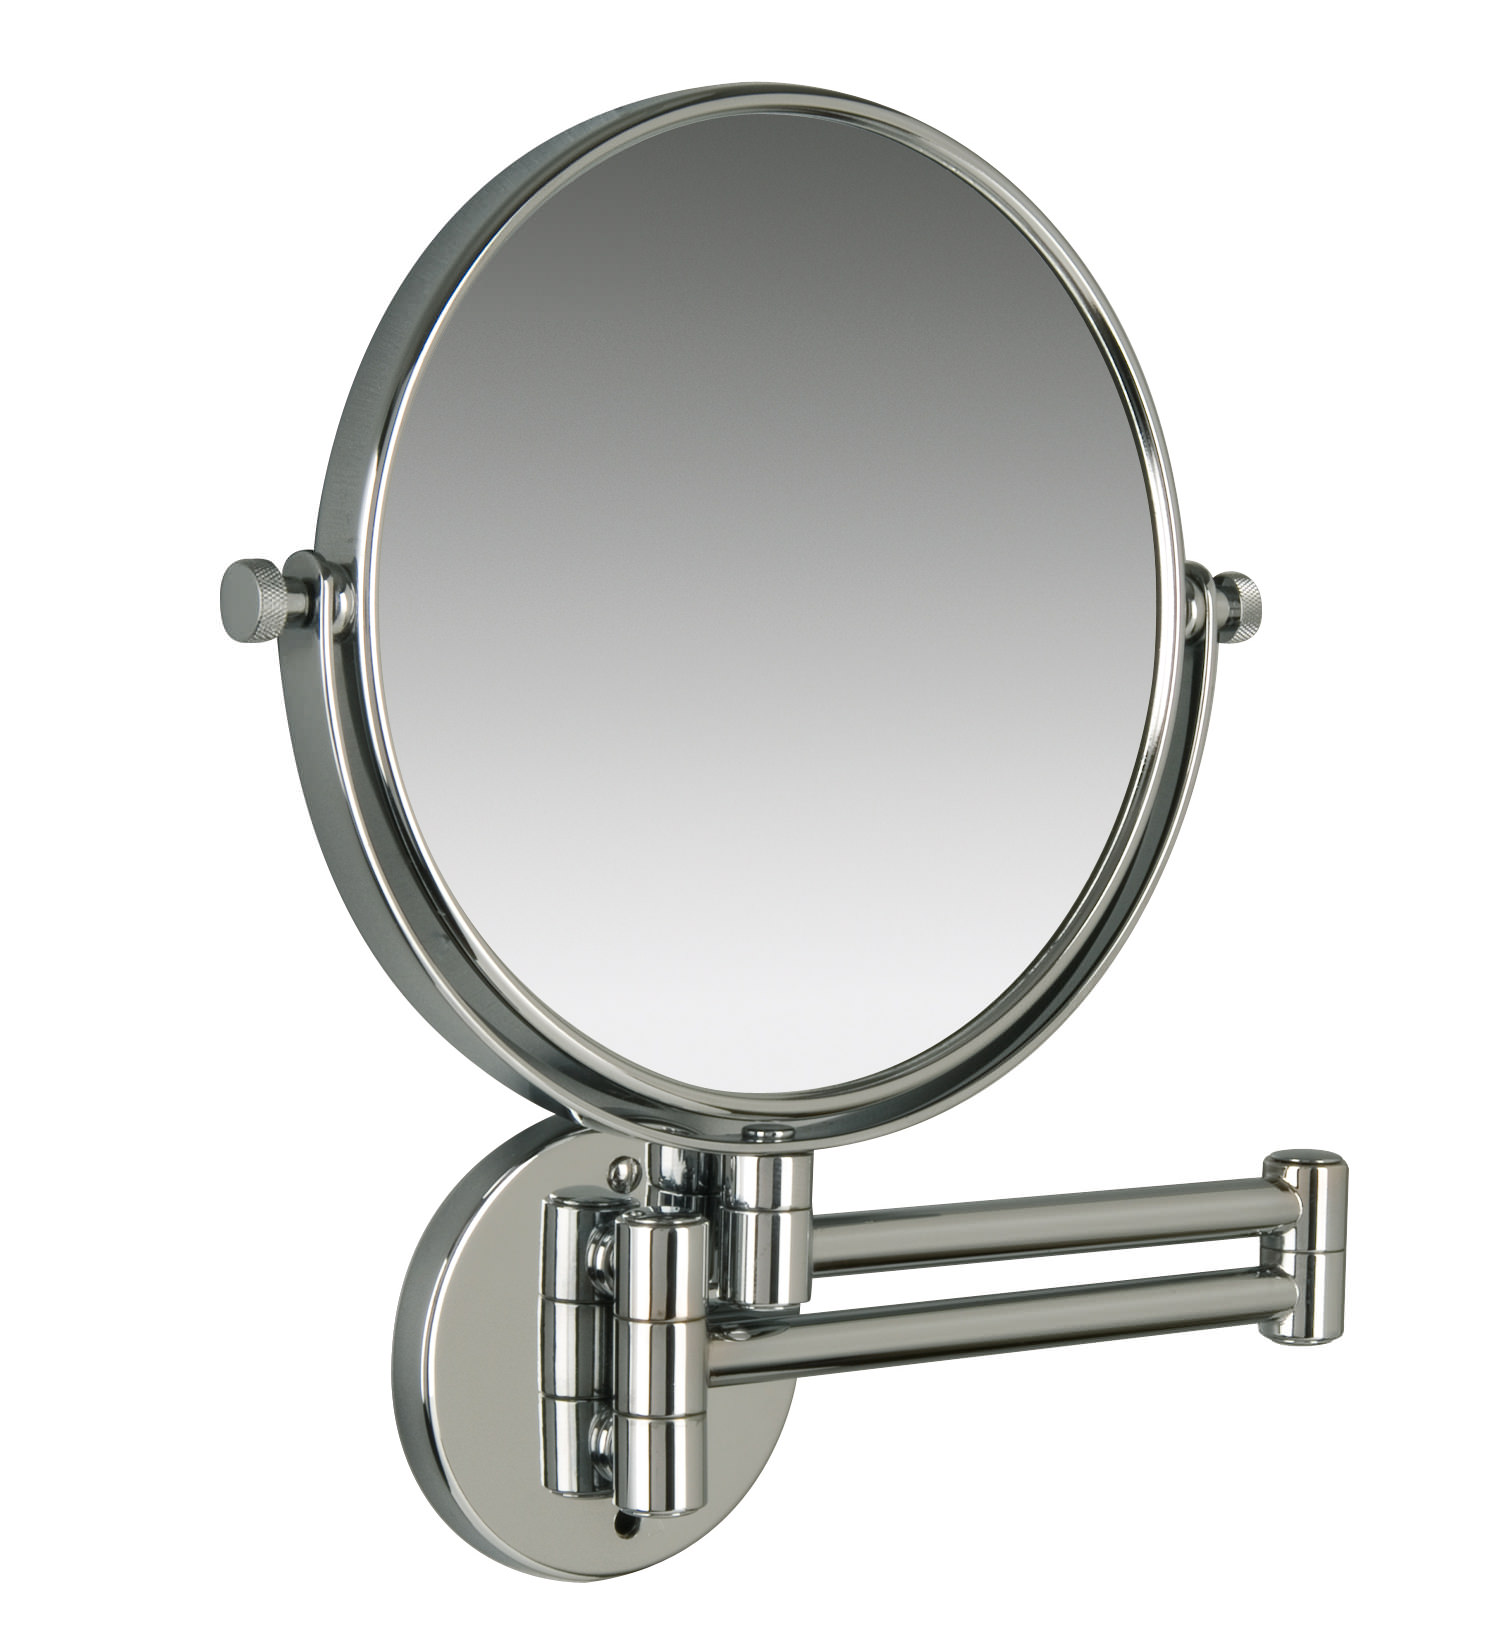 Bathroom Extension Mirrors Miller Classic Modern 190mm Round Magnifying Mirror 8781c